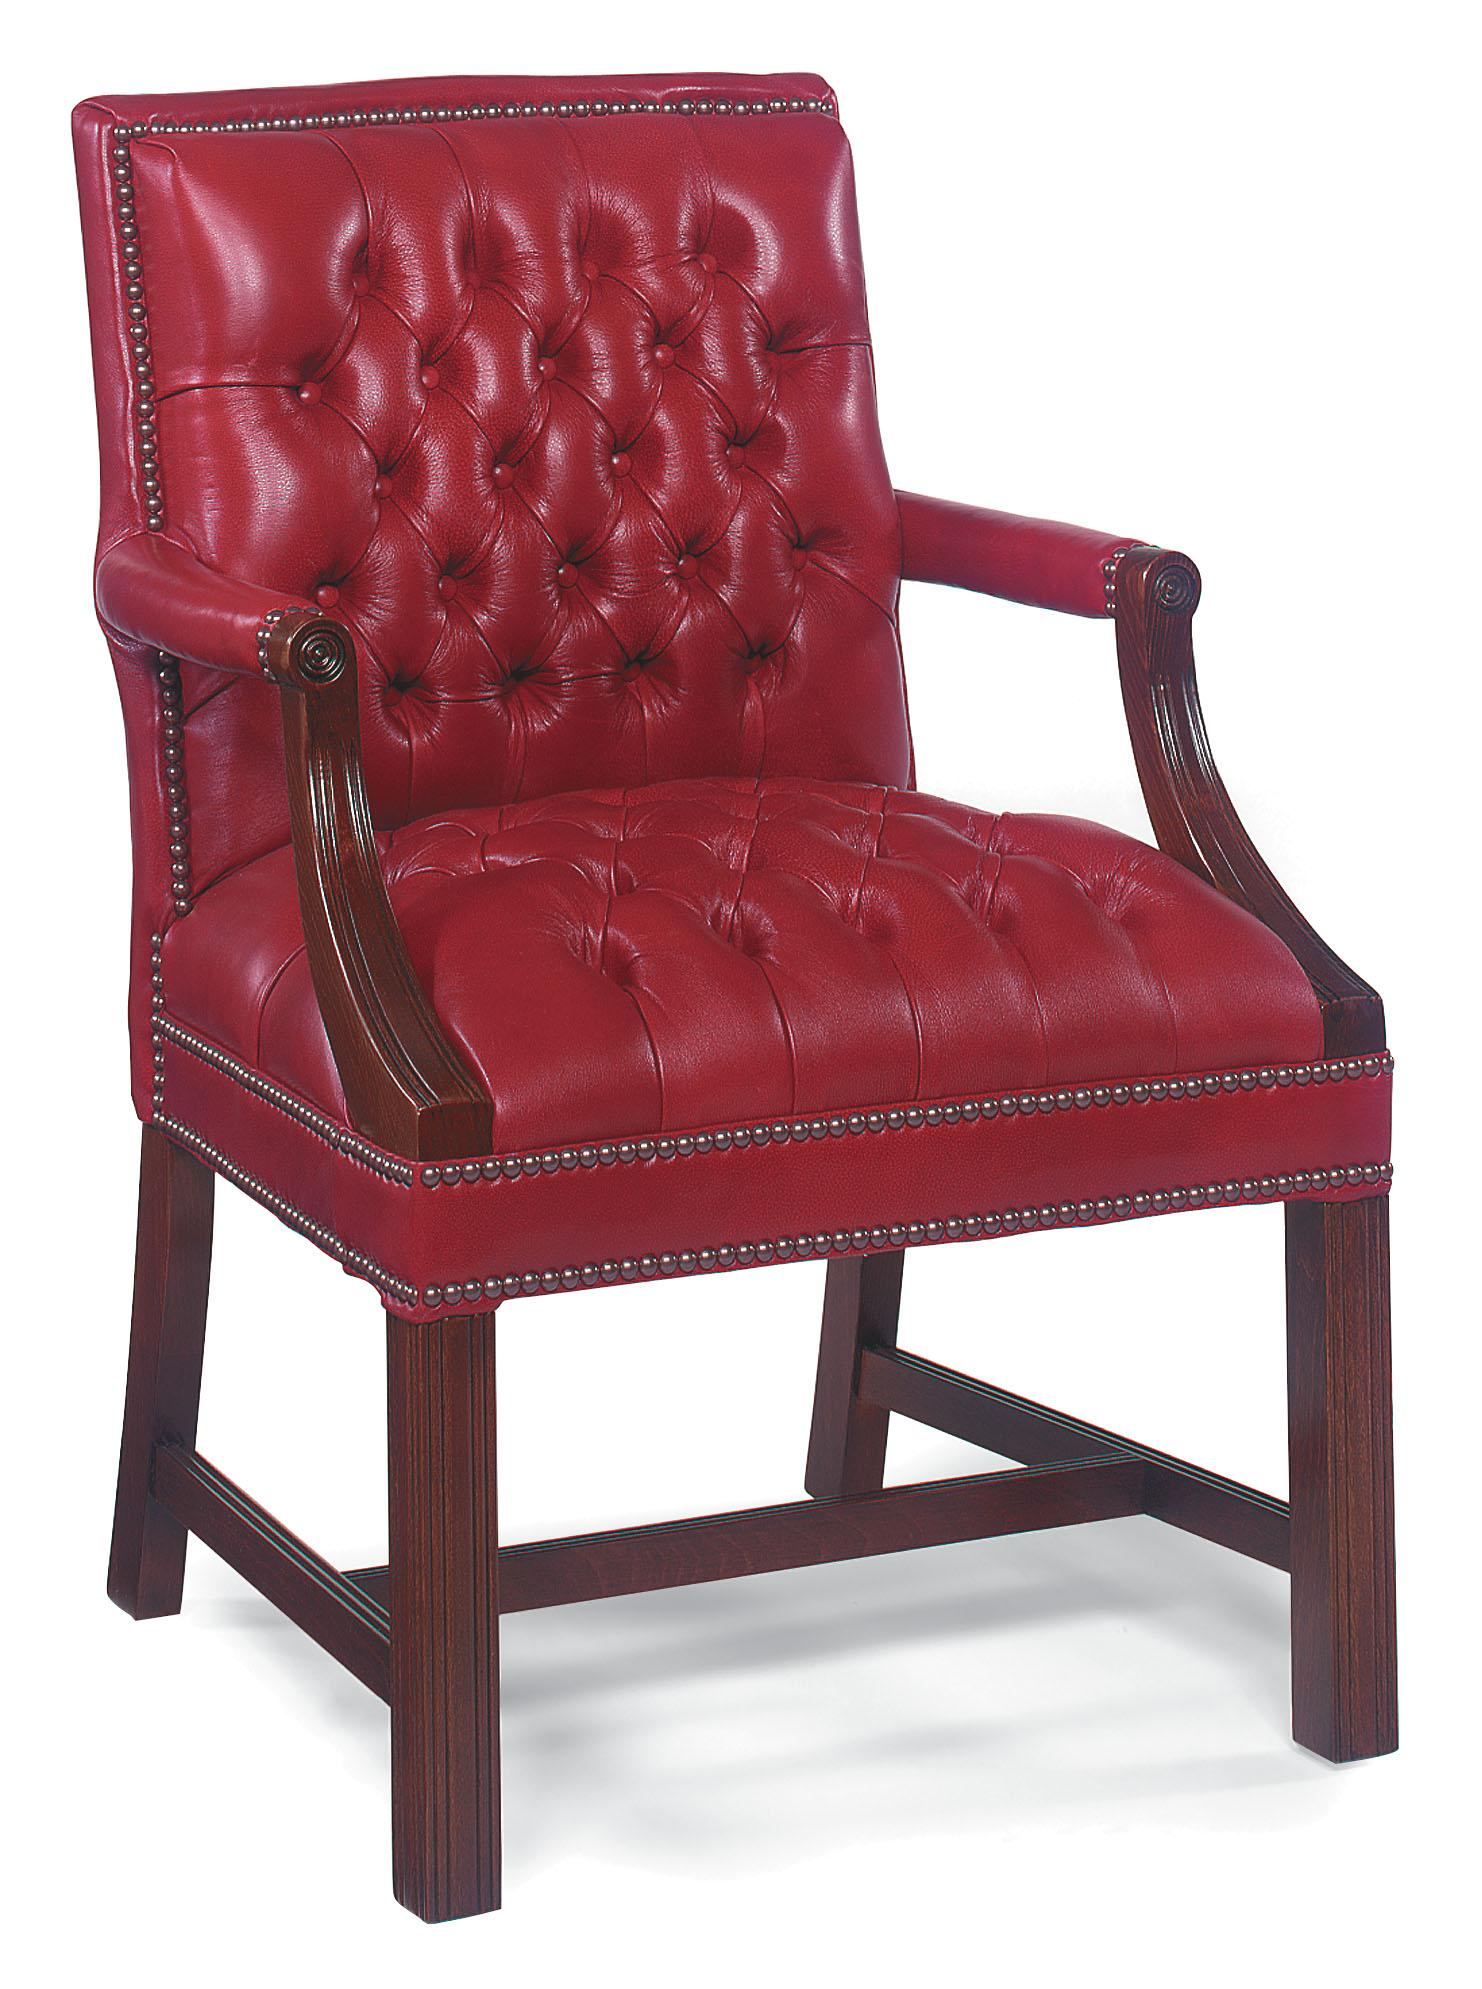 Fairfield Chairs Button Tufted Club Lounger Chair - Item Number: 5200-01